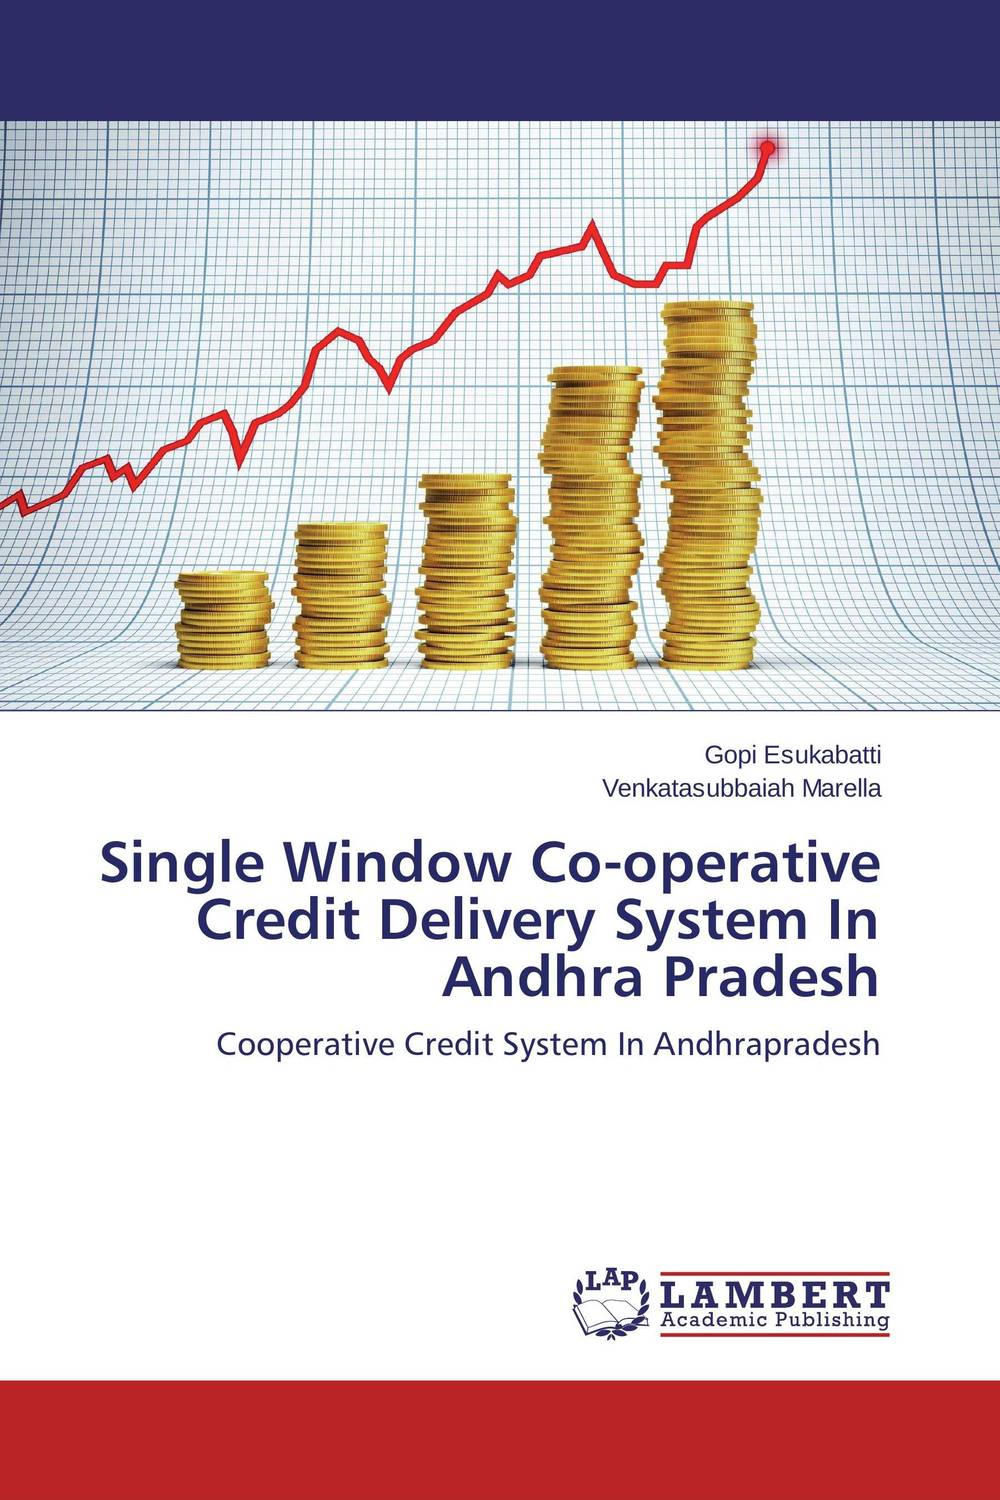 Single Window Co-operative Credit Delivery System In Andhra Pradesh panchayats in justice delivery in india